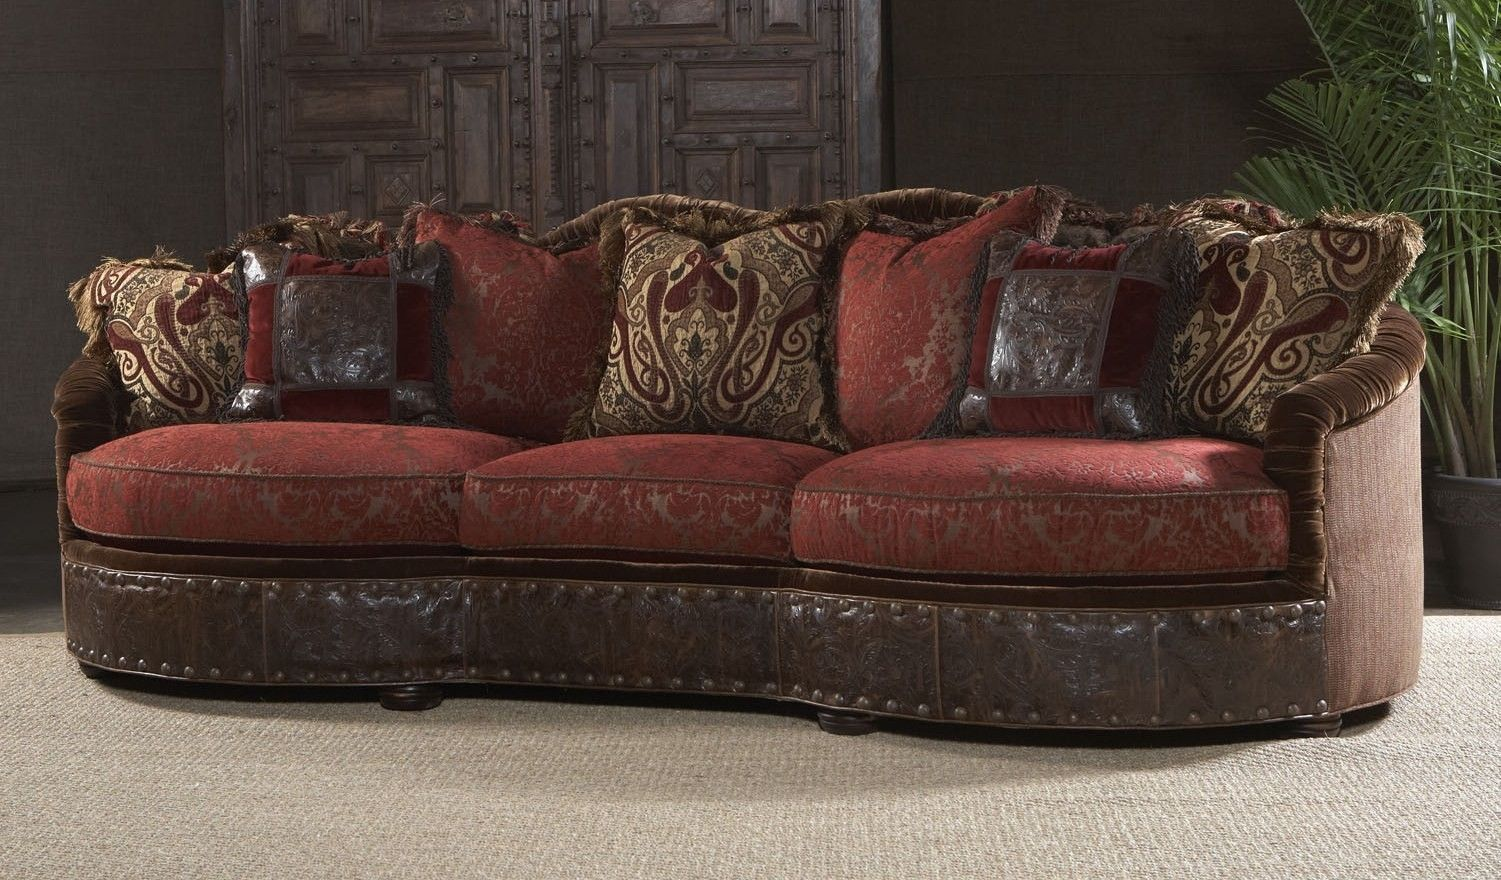 Couch Furniture Hand Crafted Luxury Furniture Sofa Couch And Decorative